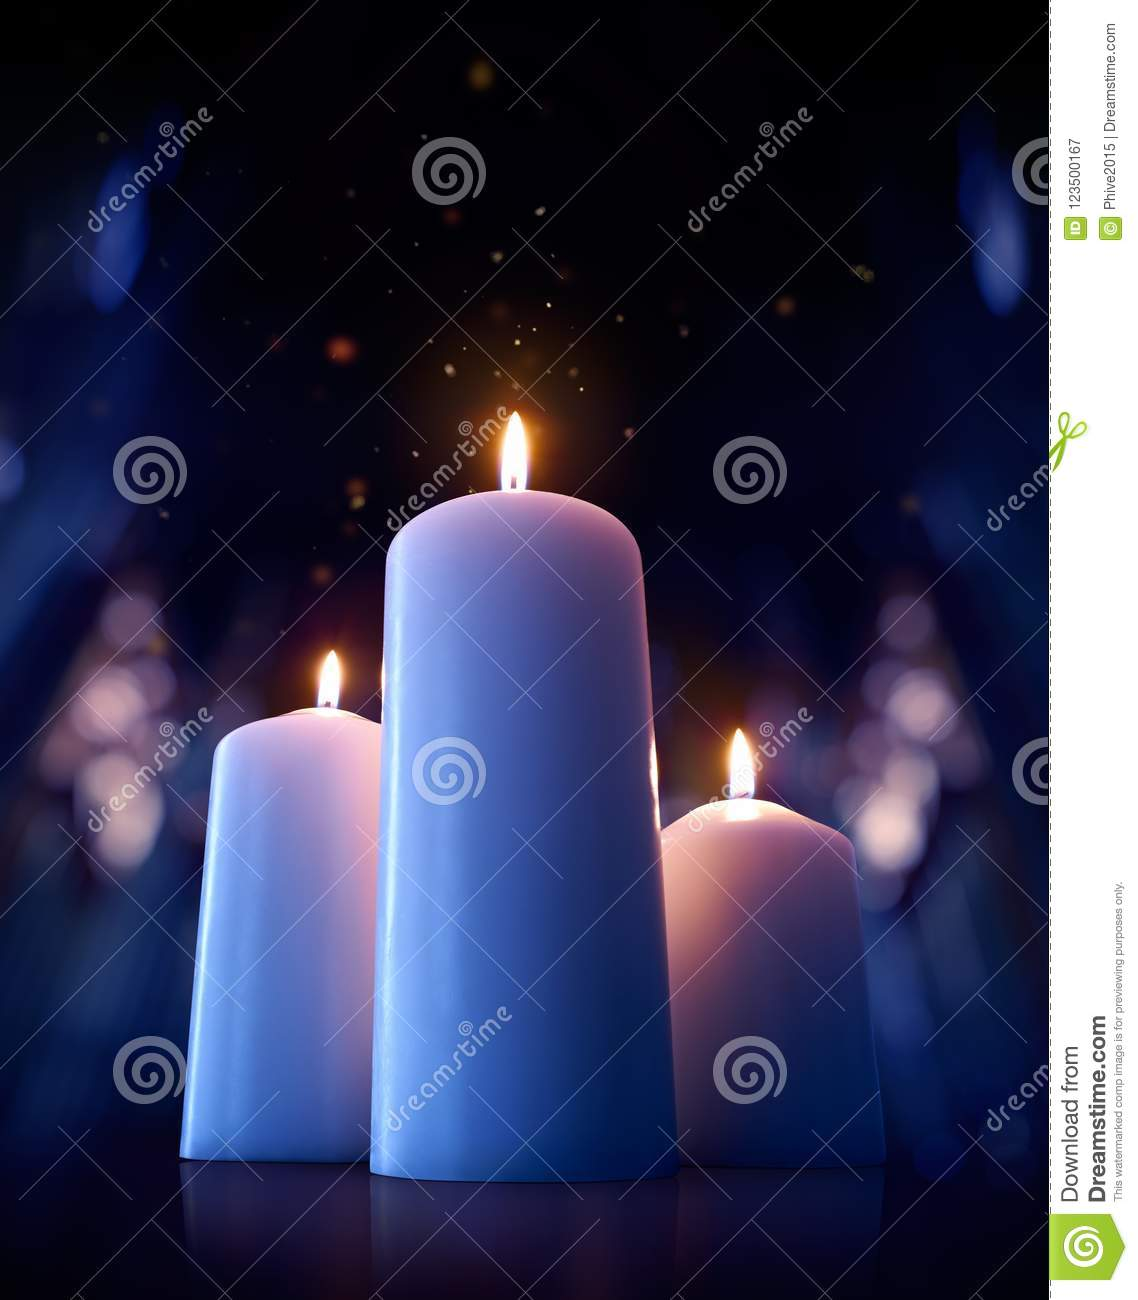 Candles On The Floor Of A Cathedral Stock Image - Image of